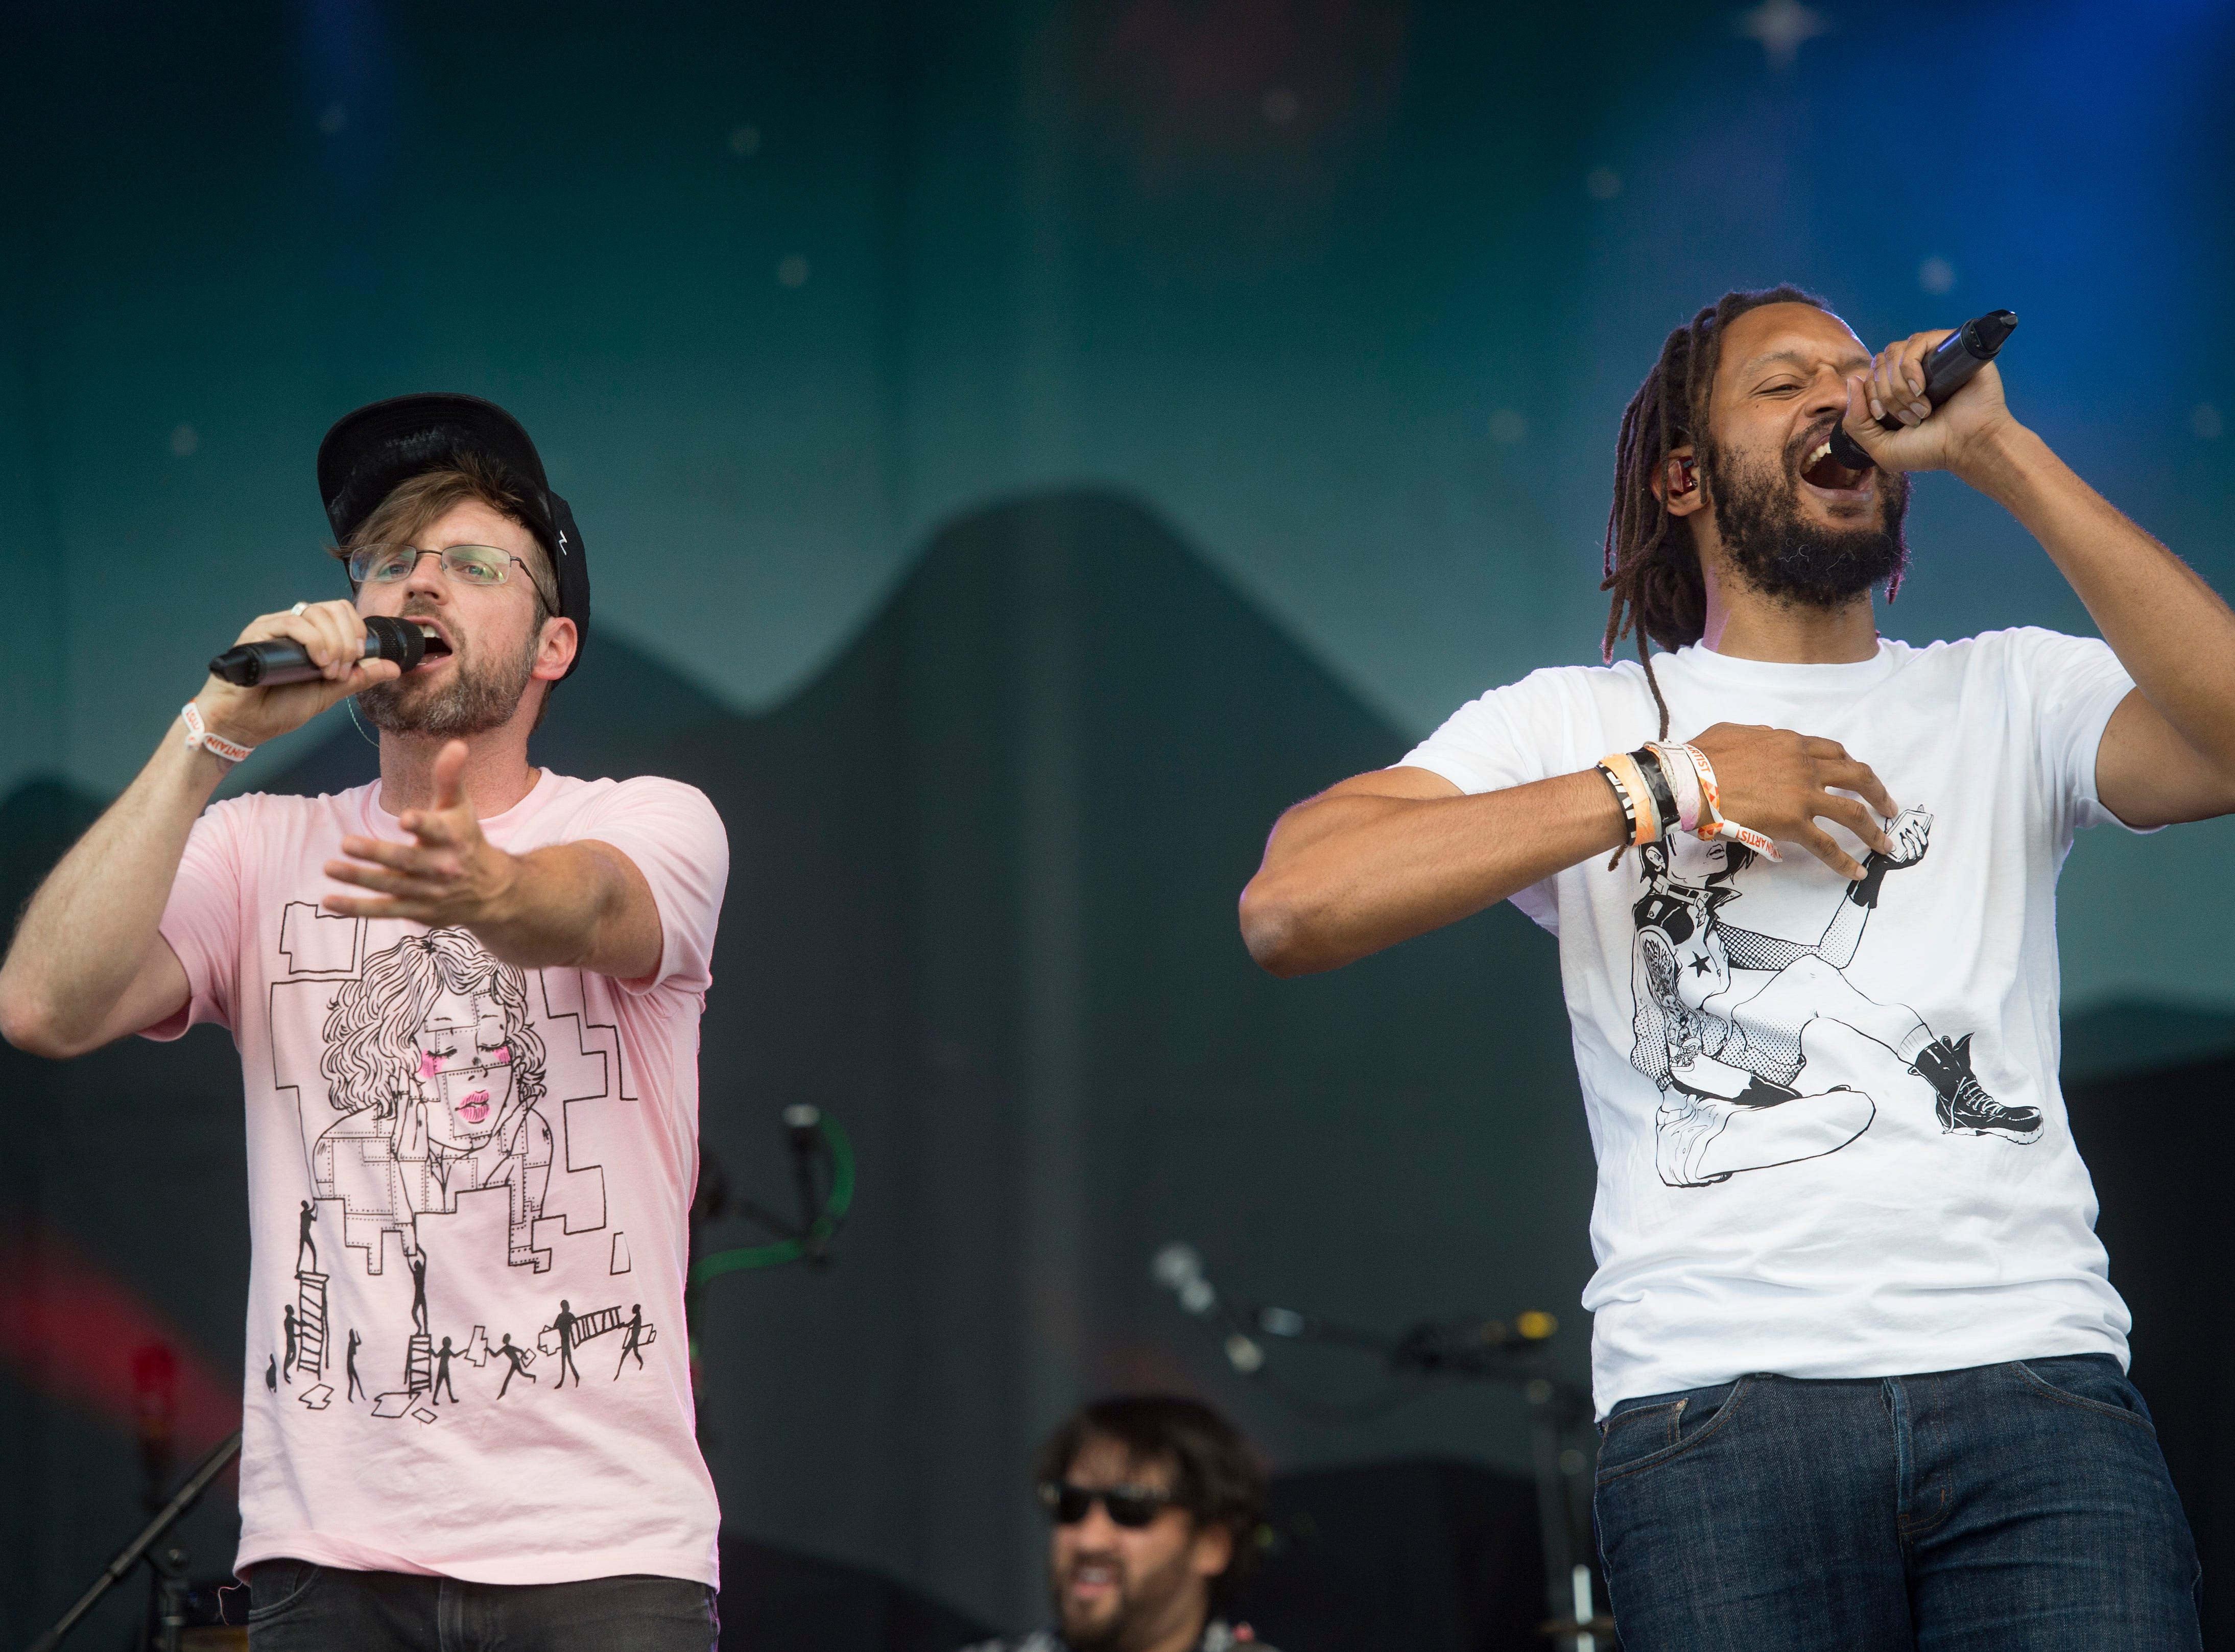 Flobots performs on the Mountain Avenue Stage during Bohemian Nights at NewWestFest in Old Town on Saturday, August 11, 2018.